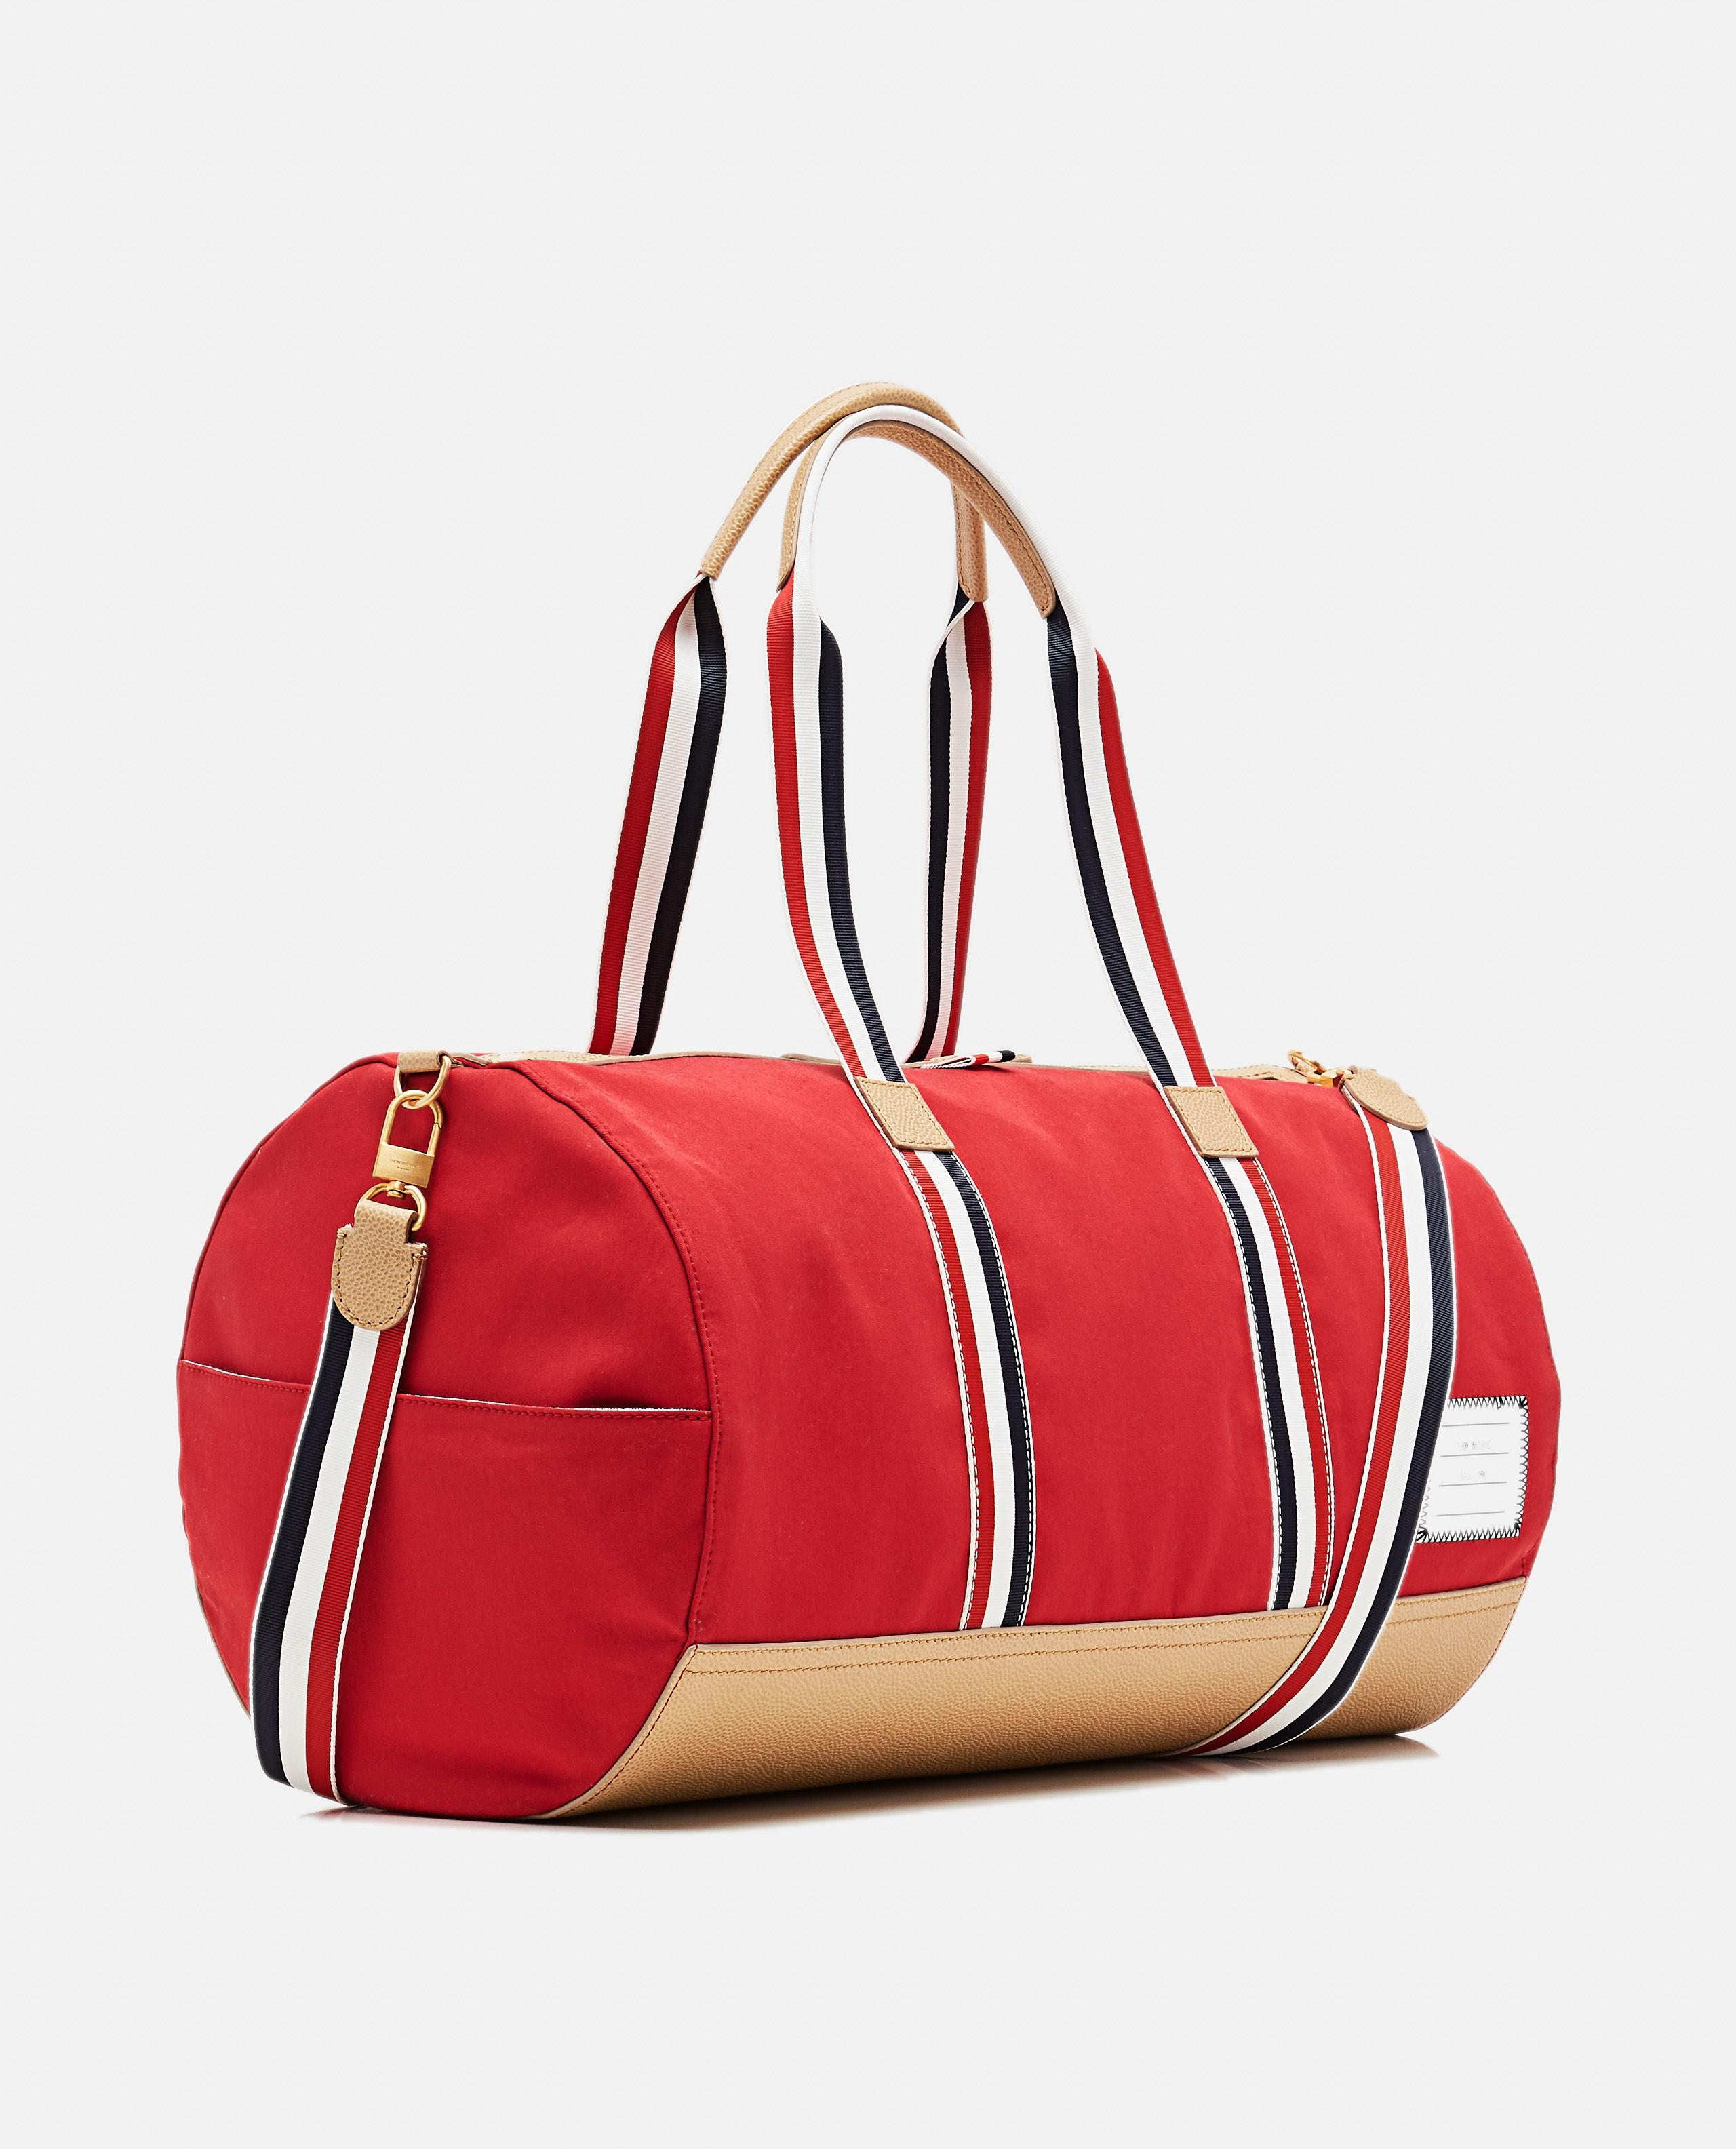 Thom Browne Tricolour Barrel Bag in Red for Men - Save 6% - Lyst 76531c1fce5f0